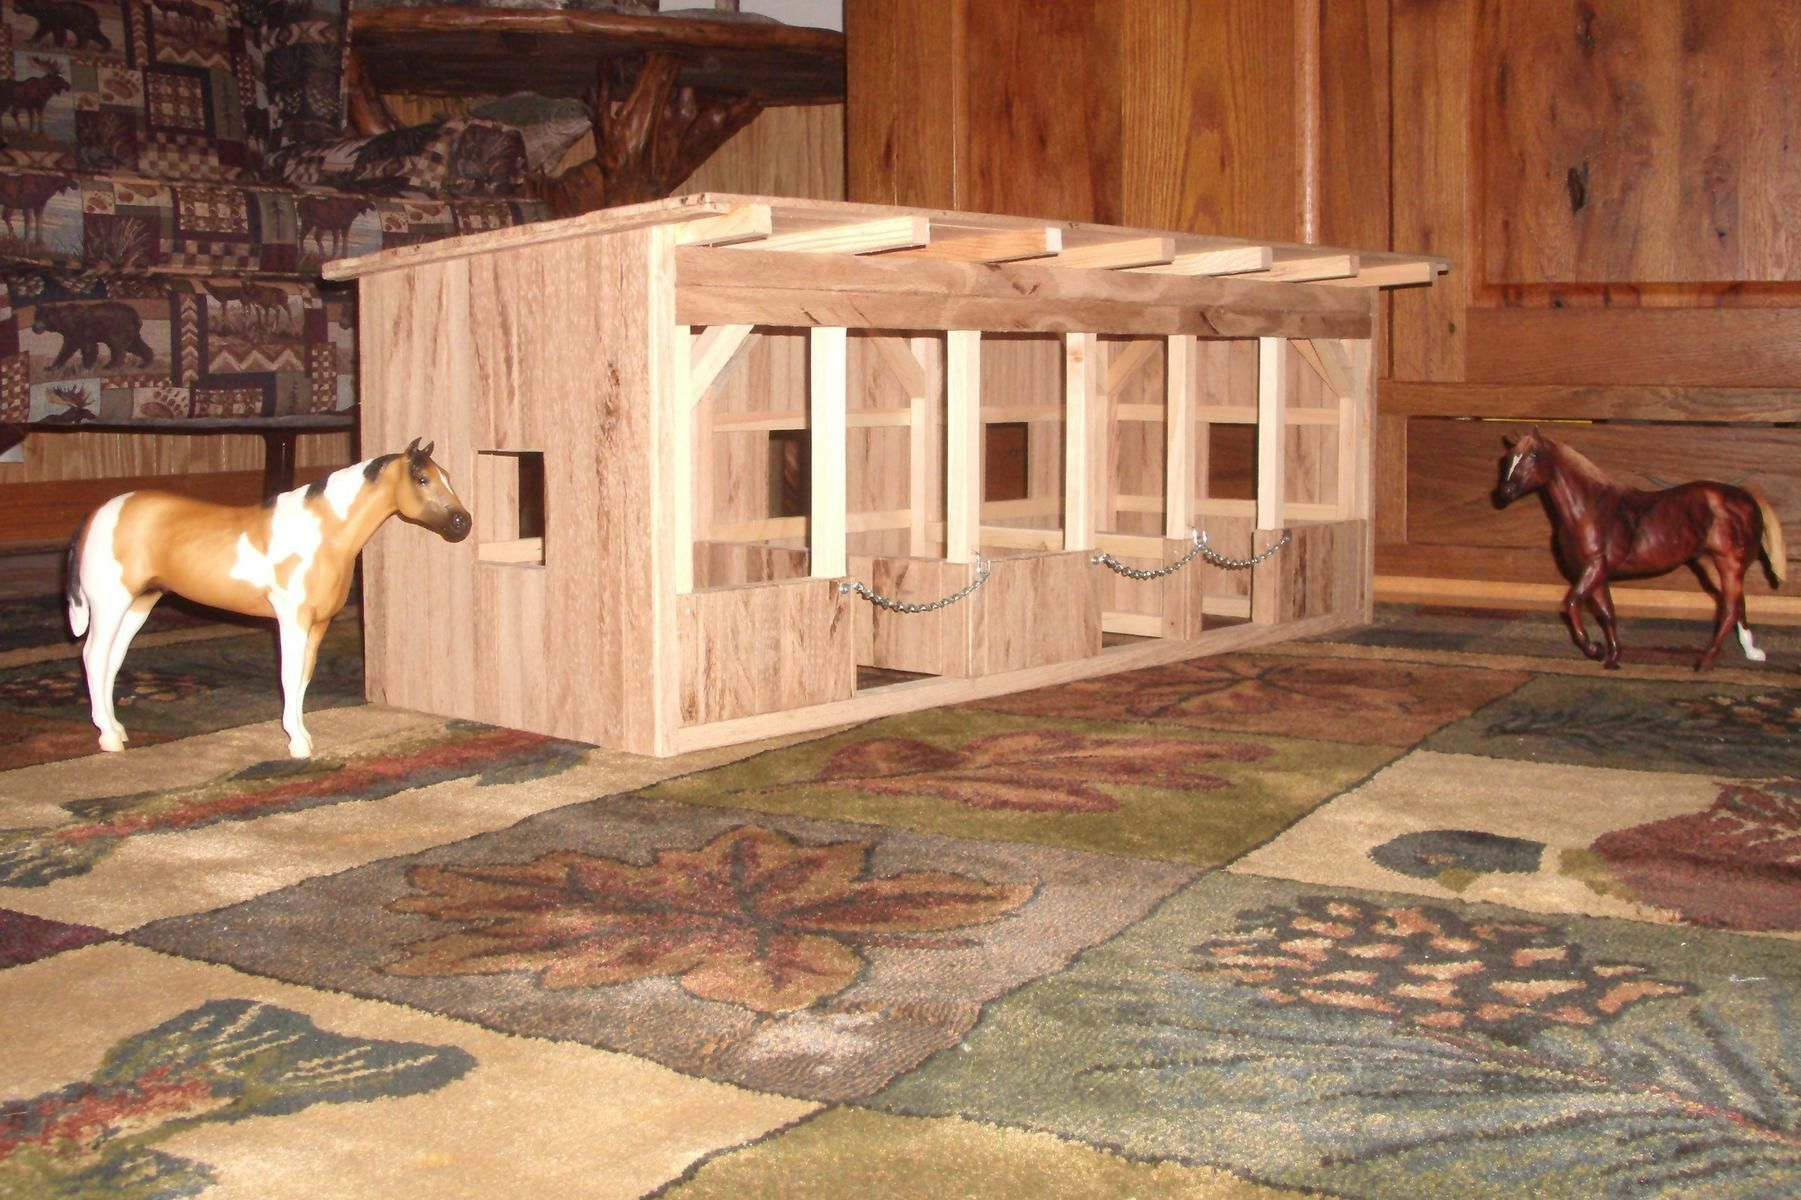 Plans For Christmas Stable Diy Ubcxmk Newyear2020blog Site